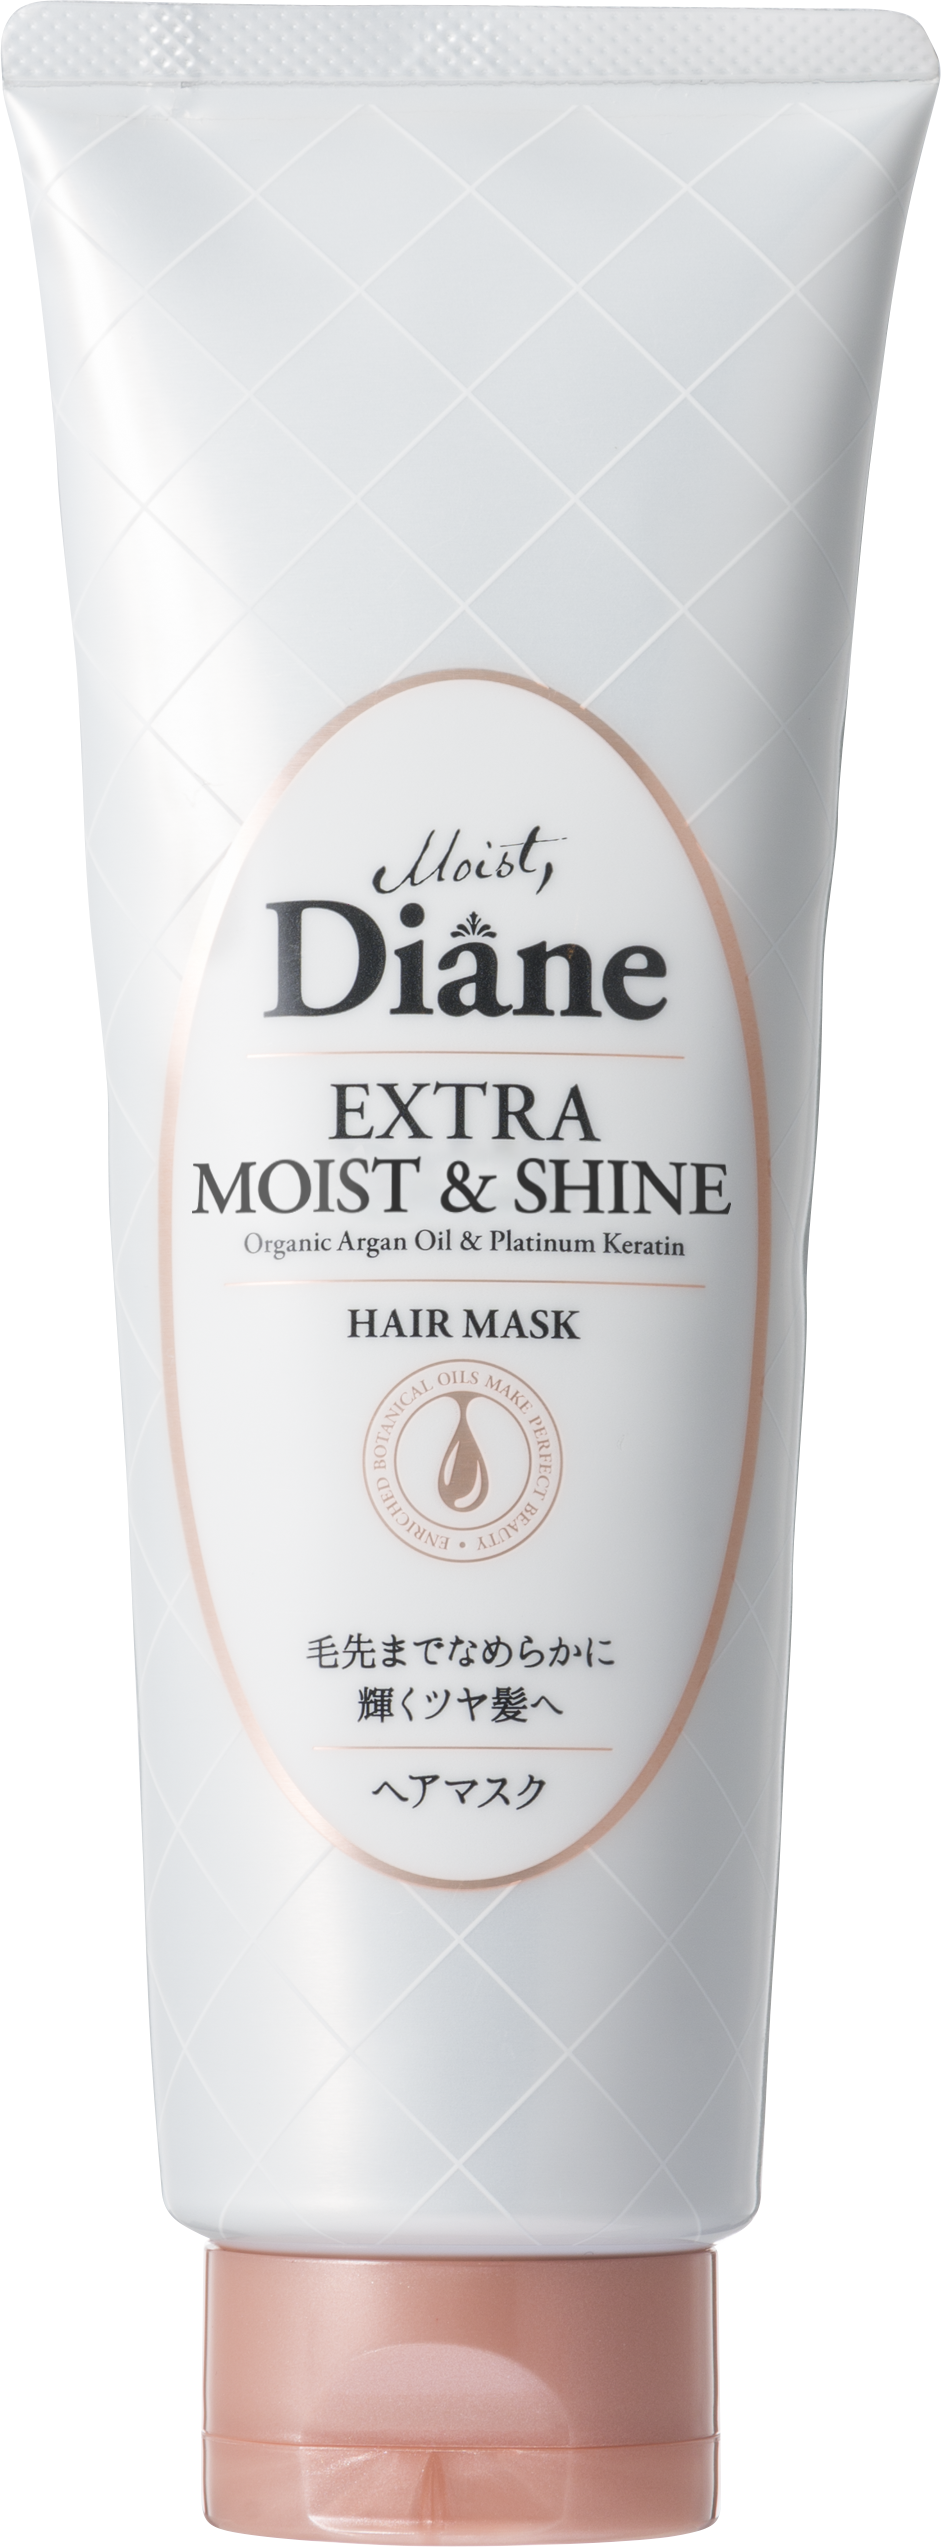 Best Hair Treatment And Mask For Frizzy Hair Extra Moist Shine Hair Mask